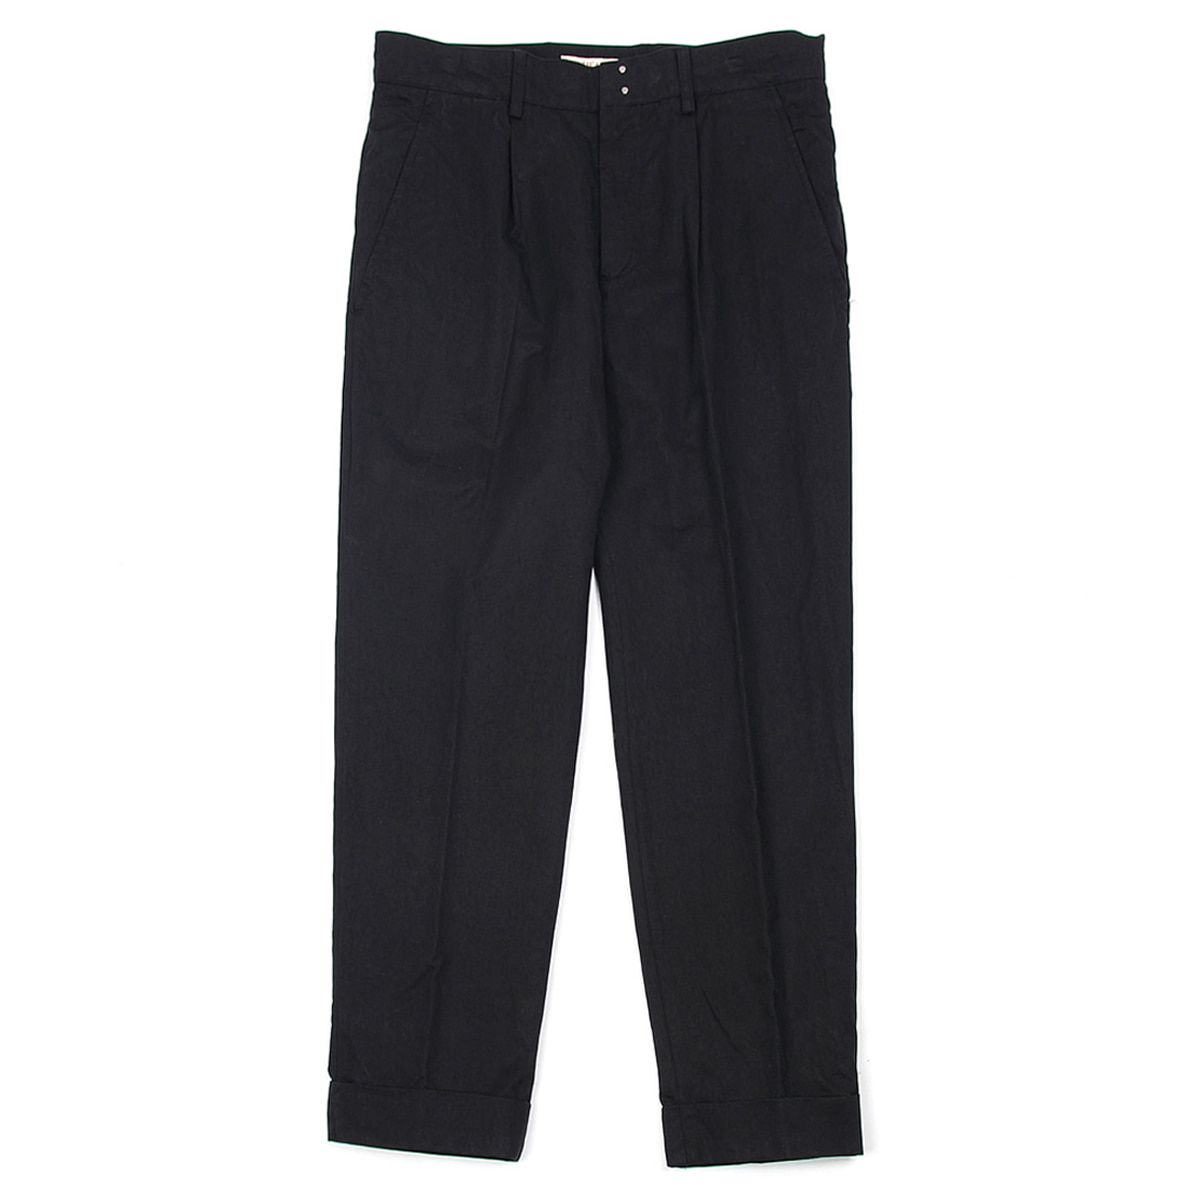 [BEHEAVYER] BHR STANDARD PANTS 'BLACK'